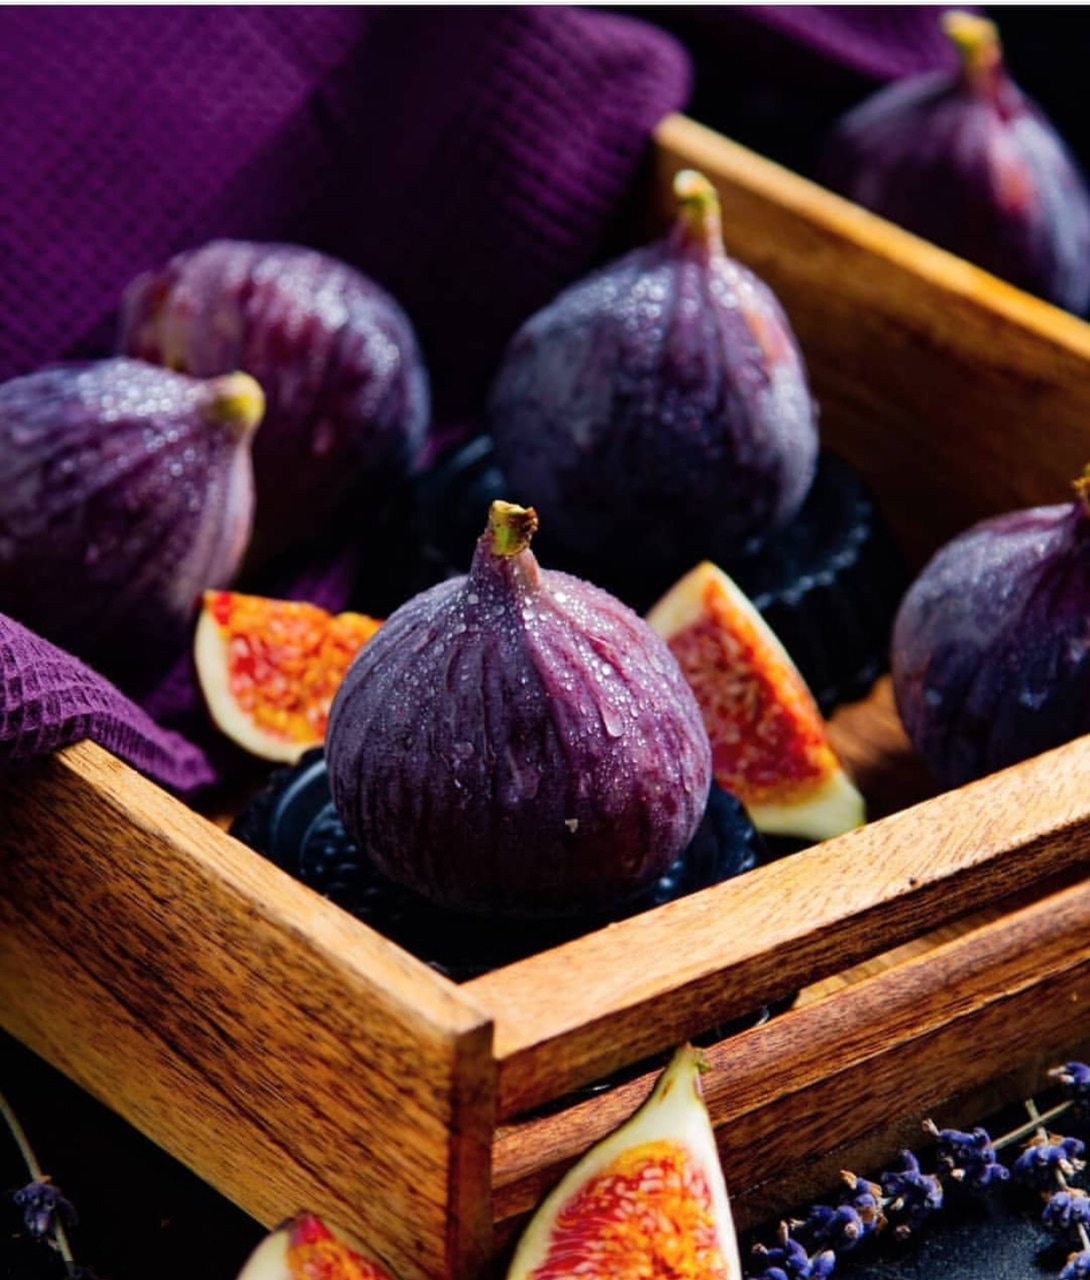 figs, fruit and discover